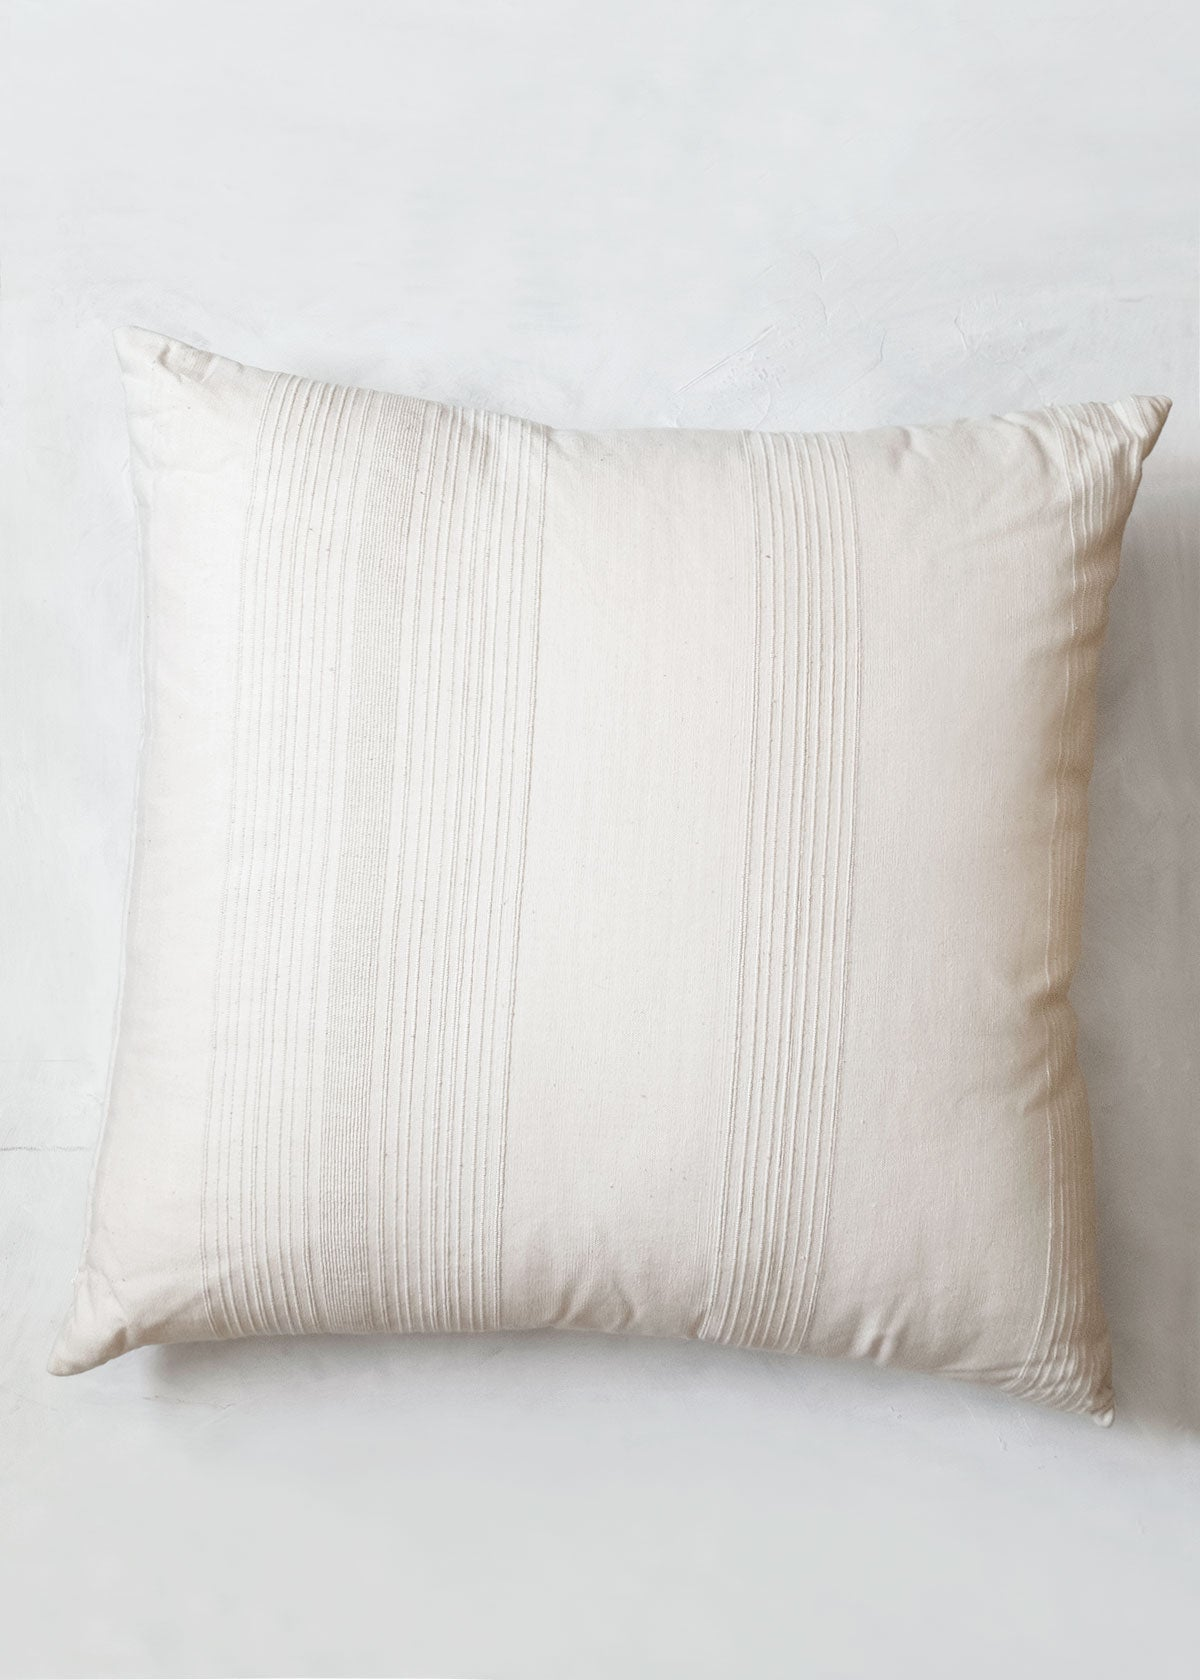 Sustainable Threads Whipped Cream Handwoven Pillow